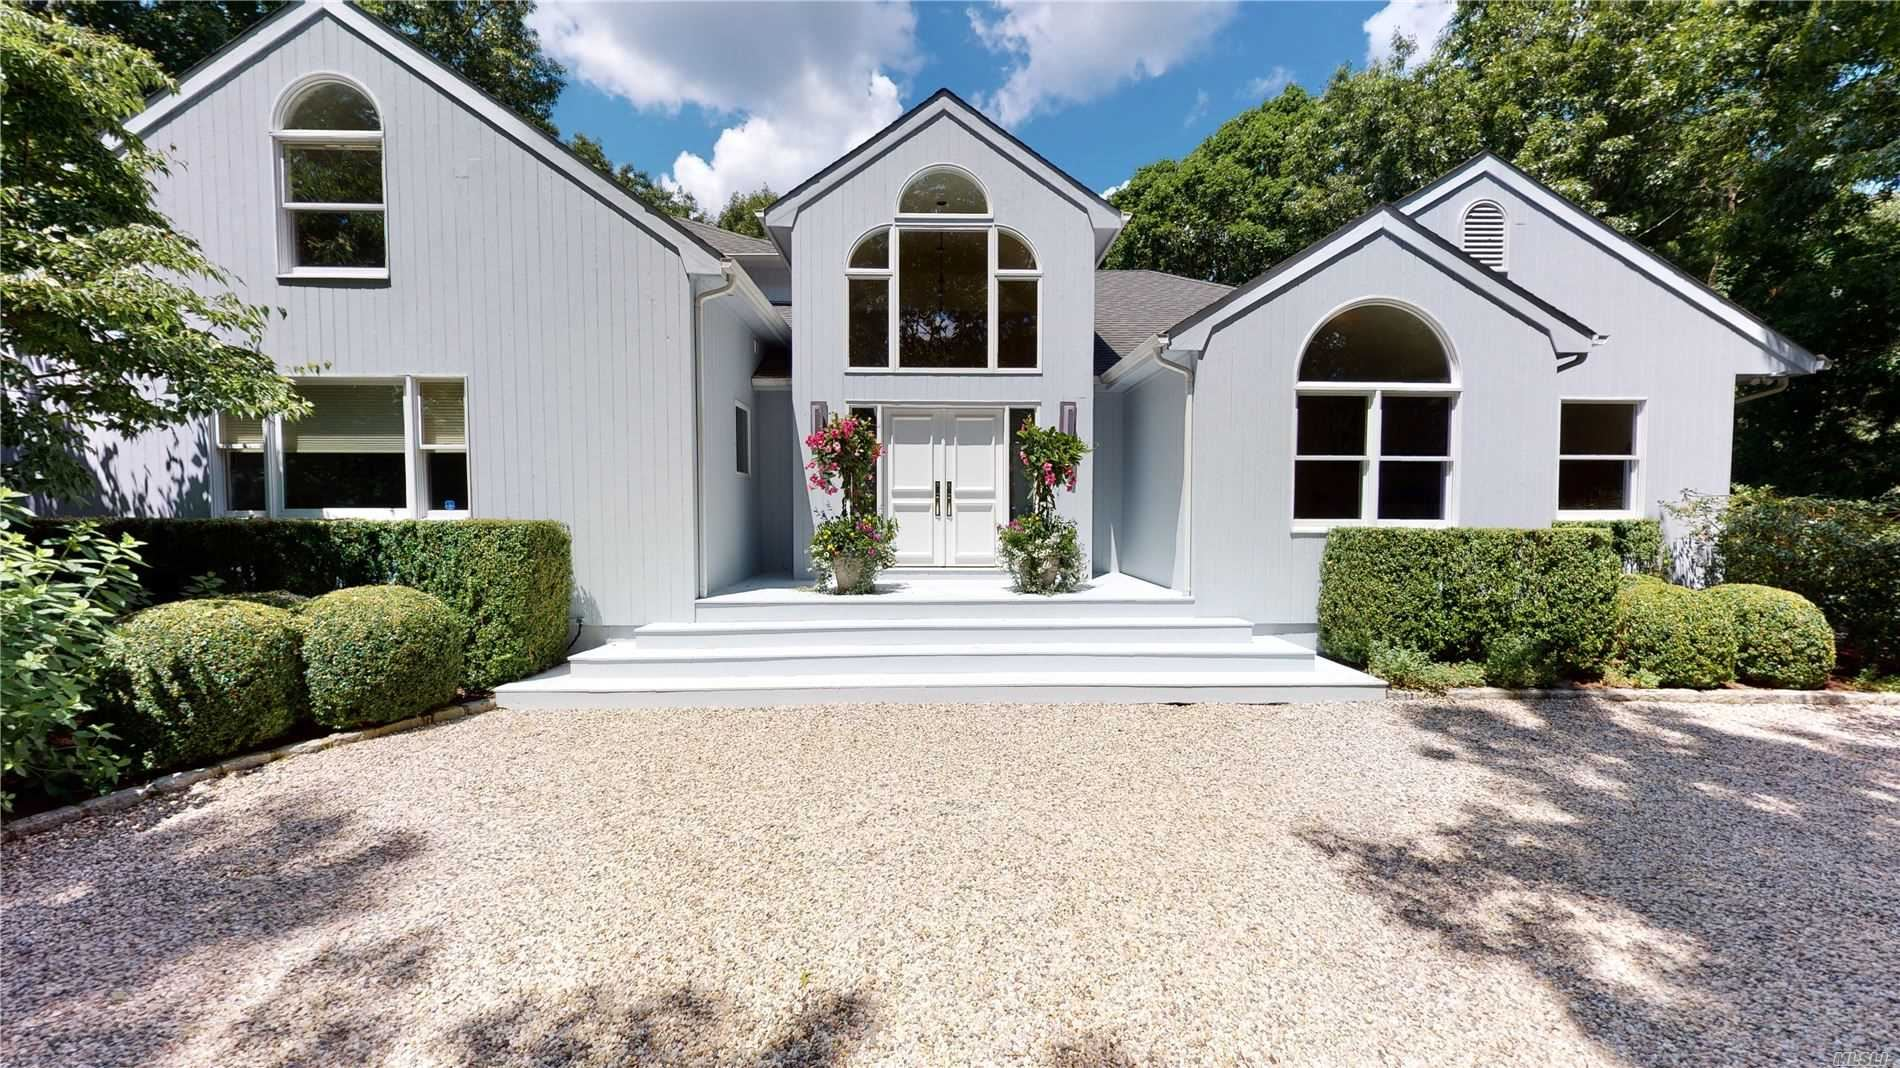 81 Whippoorwill Lane, East Quogue, NY 11942 - MLS#: 3234565